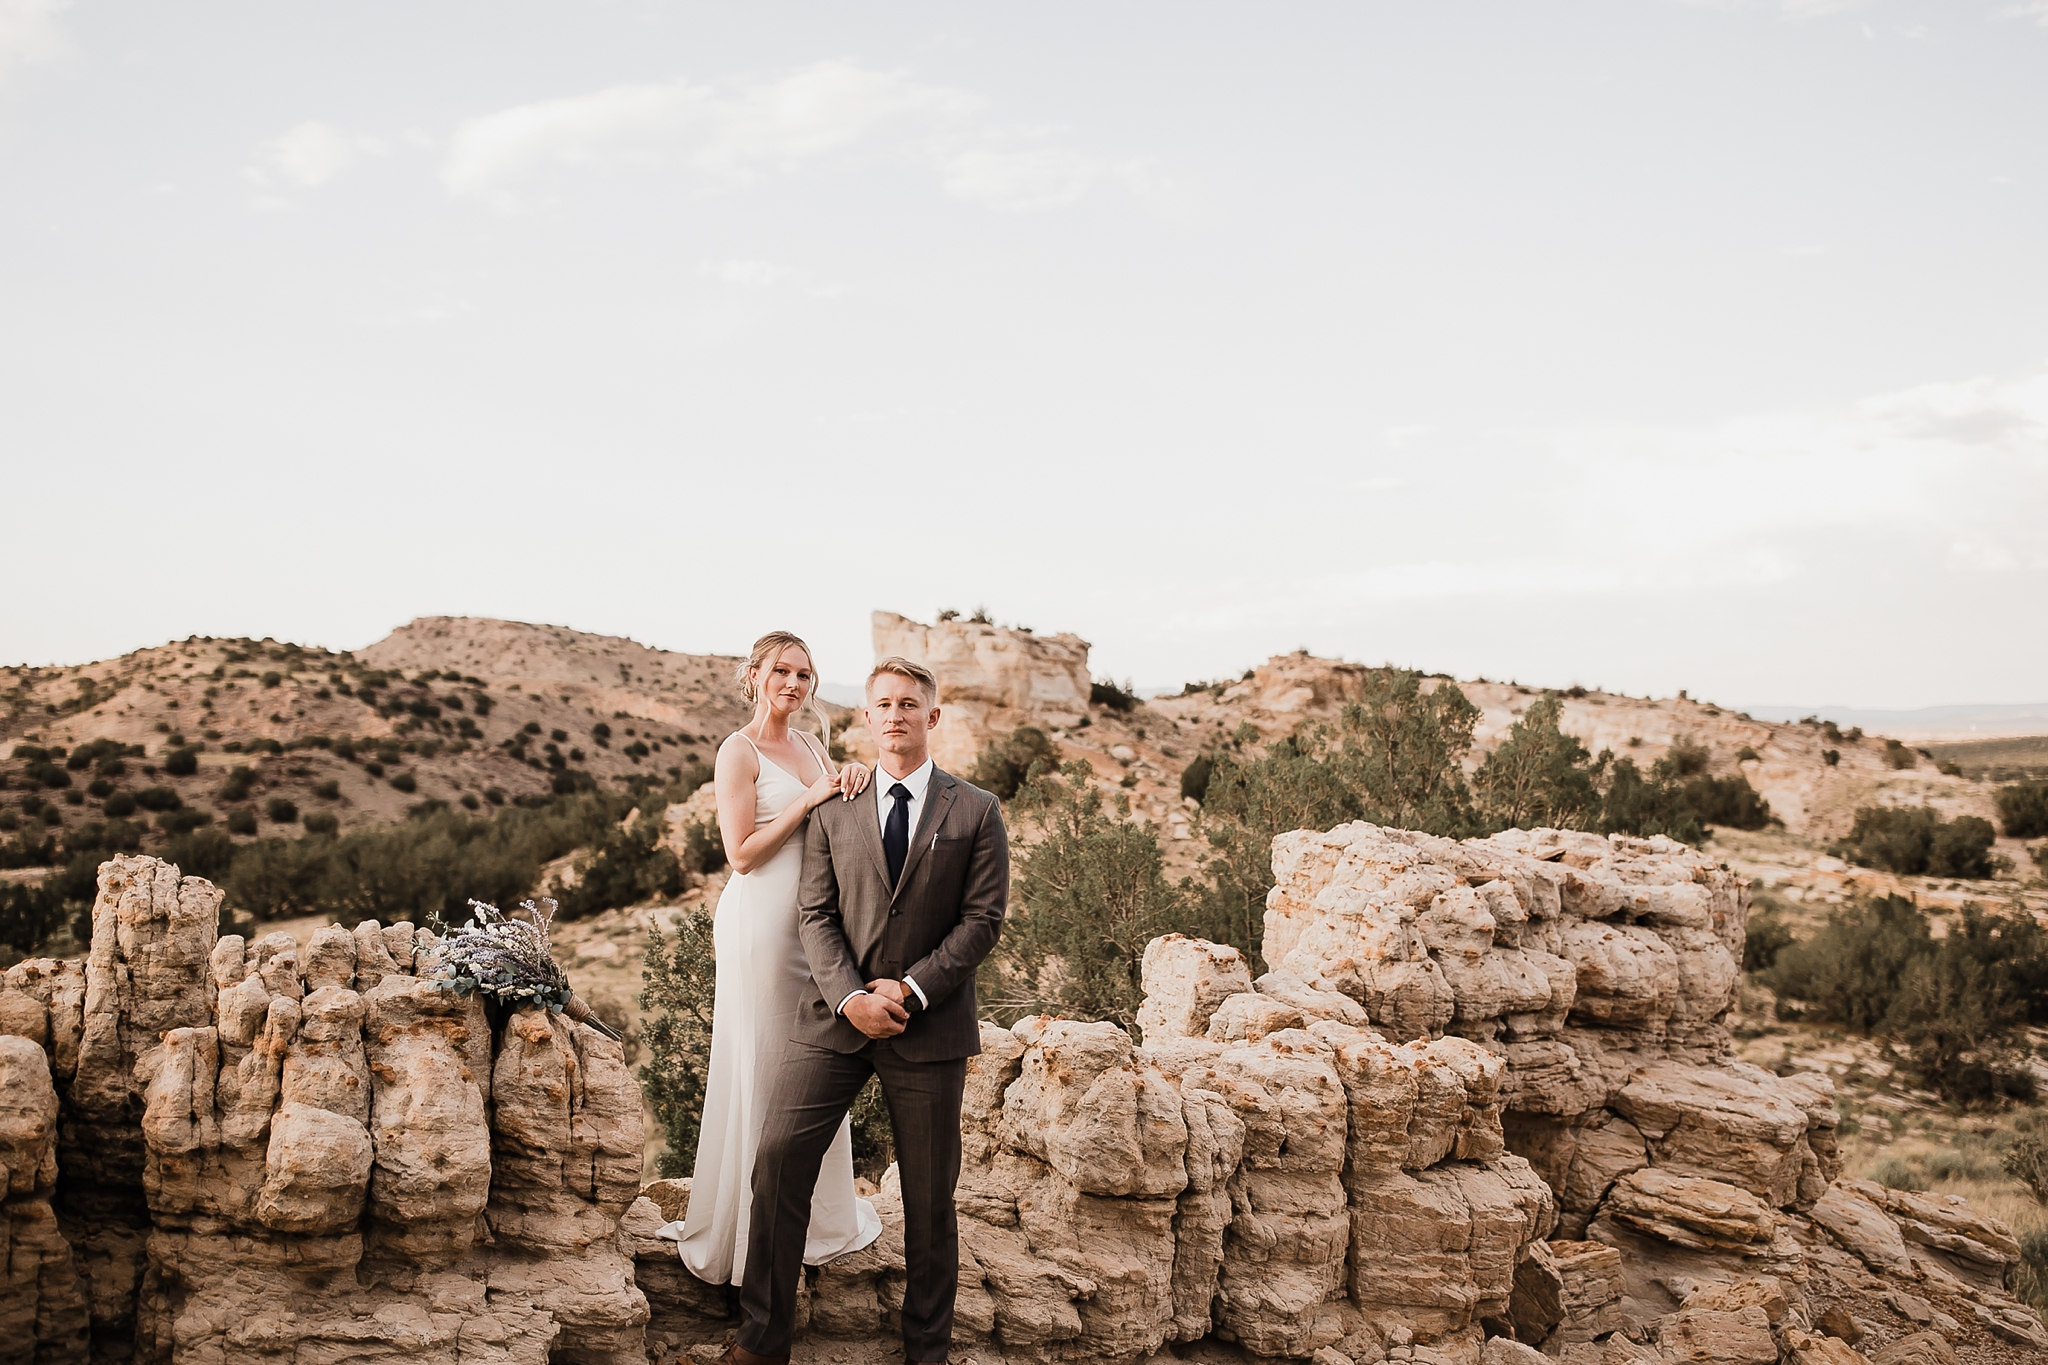 Alicia+lucia+photography+-+albuquerque+wedding+photographer+-+santa+fe+wedding+photography+-+new+mexico+wedding+photographer+-+new+mexico+wedding+-+new+mexico+elopement+-+elopment+-+mountain+elopement_0008.jpg